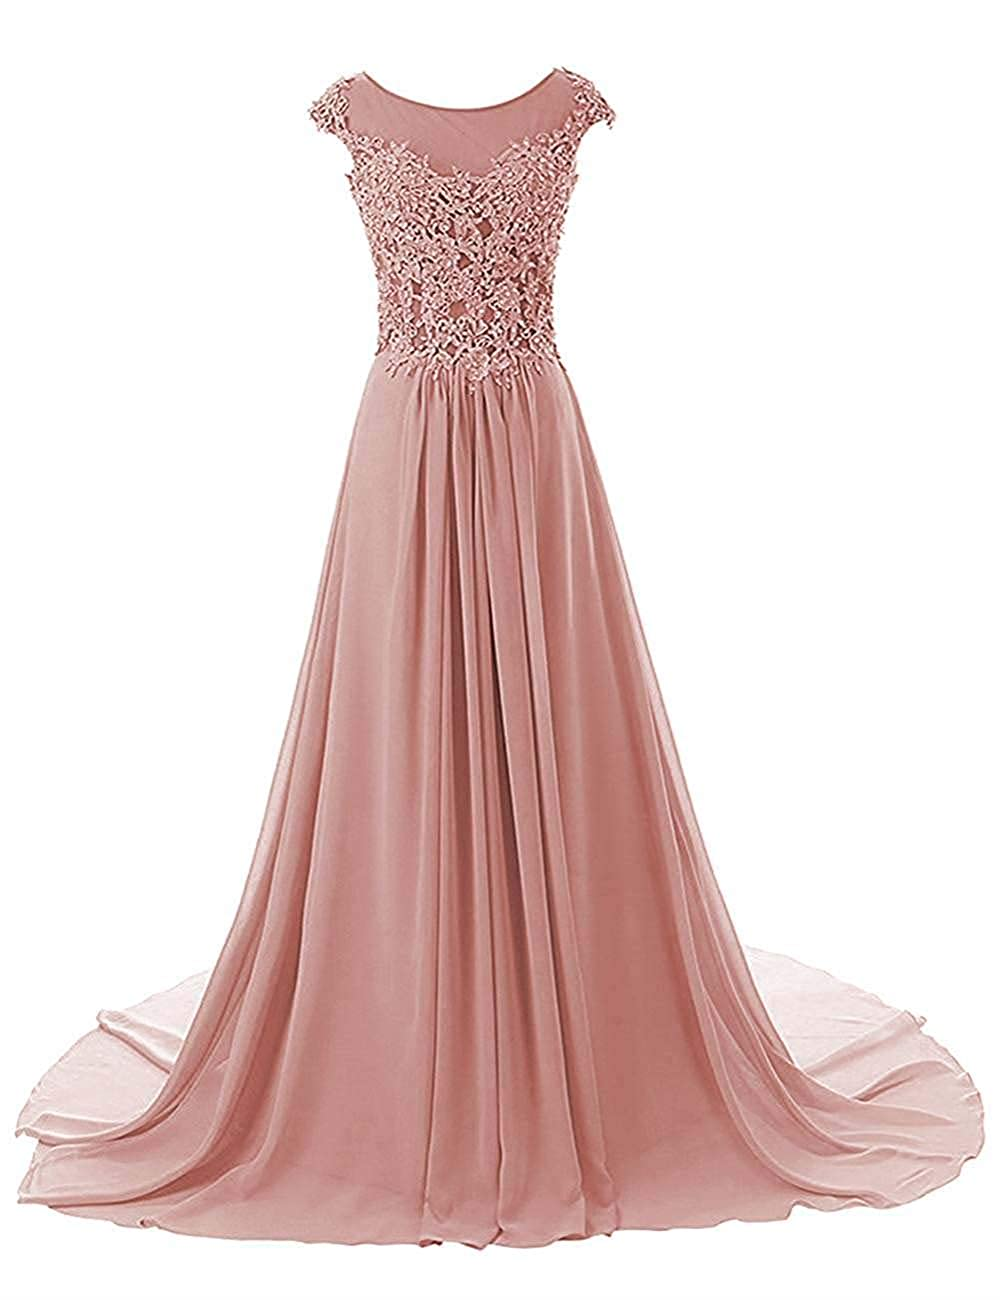 bluesh Pink Wanshaqin Women's Aline Lace Appliques Evening Party Cocktail Dresses Bridesmaid Gowns Prom Formal Dresses for Events Party